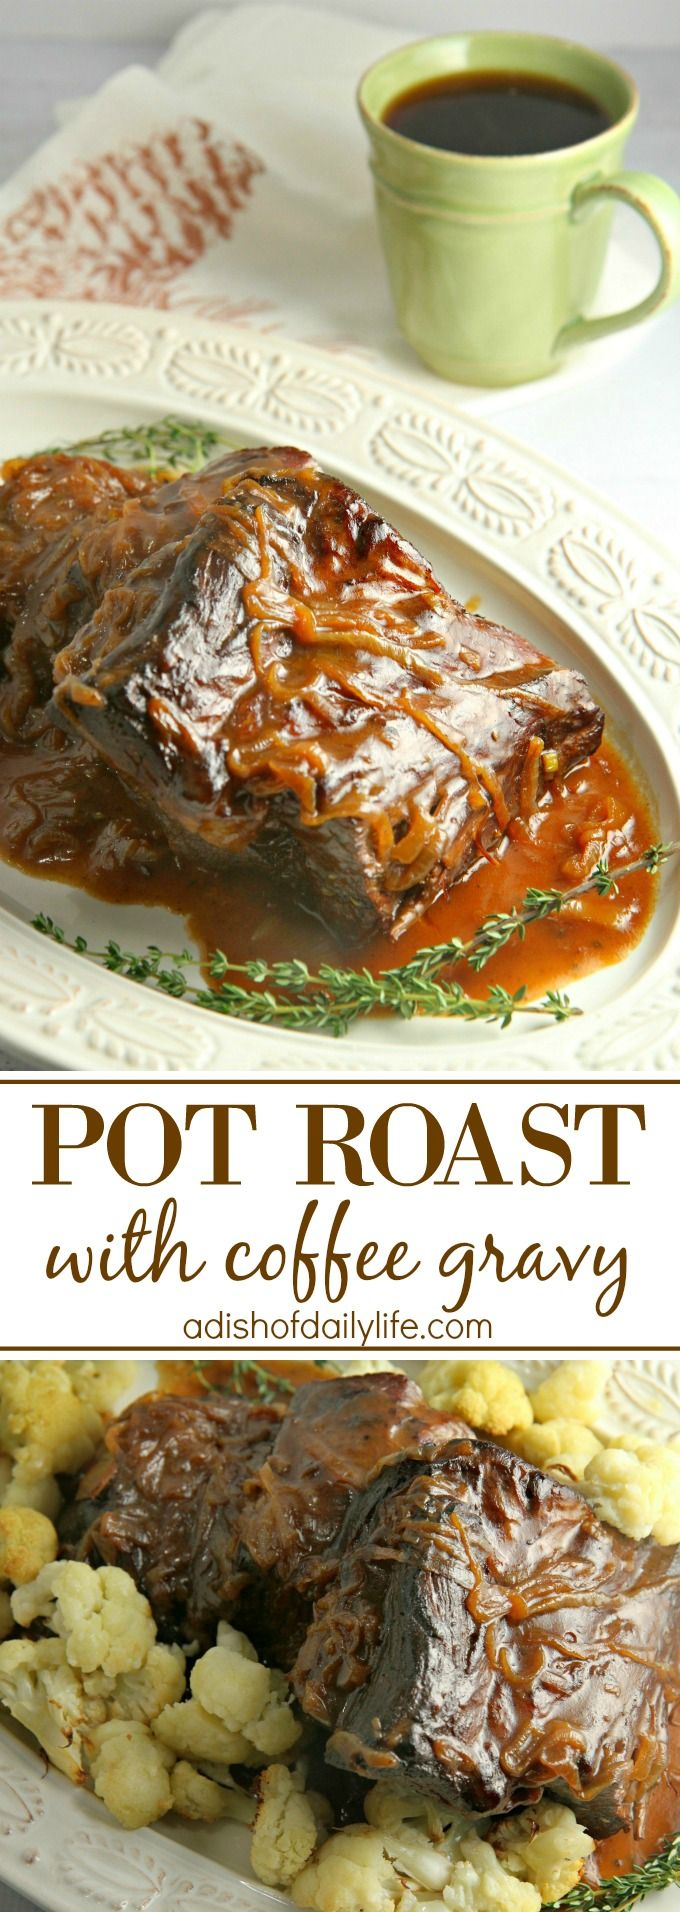 Slow cooked, melt in your mouth Pot Roast with Coffee Gravy and caramelized onions is the perfect comfort food for the chilly winter months. AD #KACraftCoffee